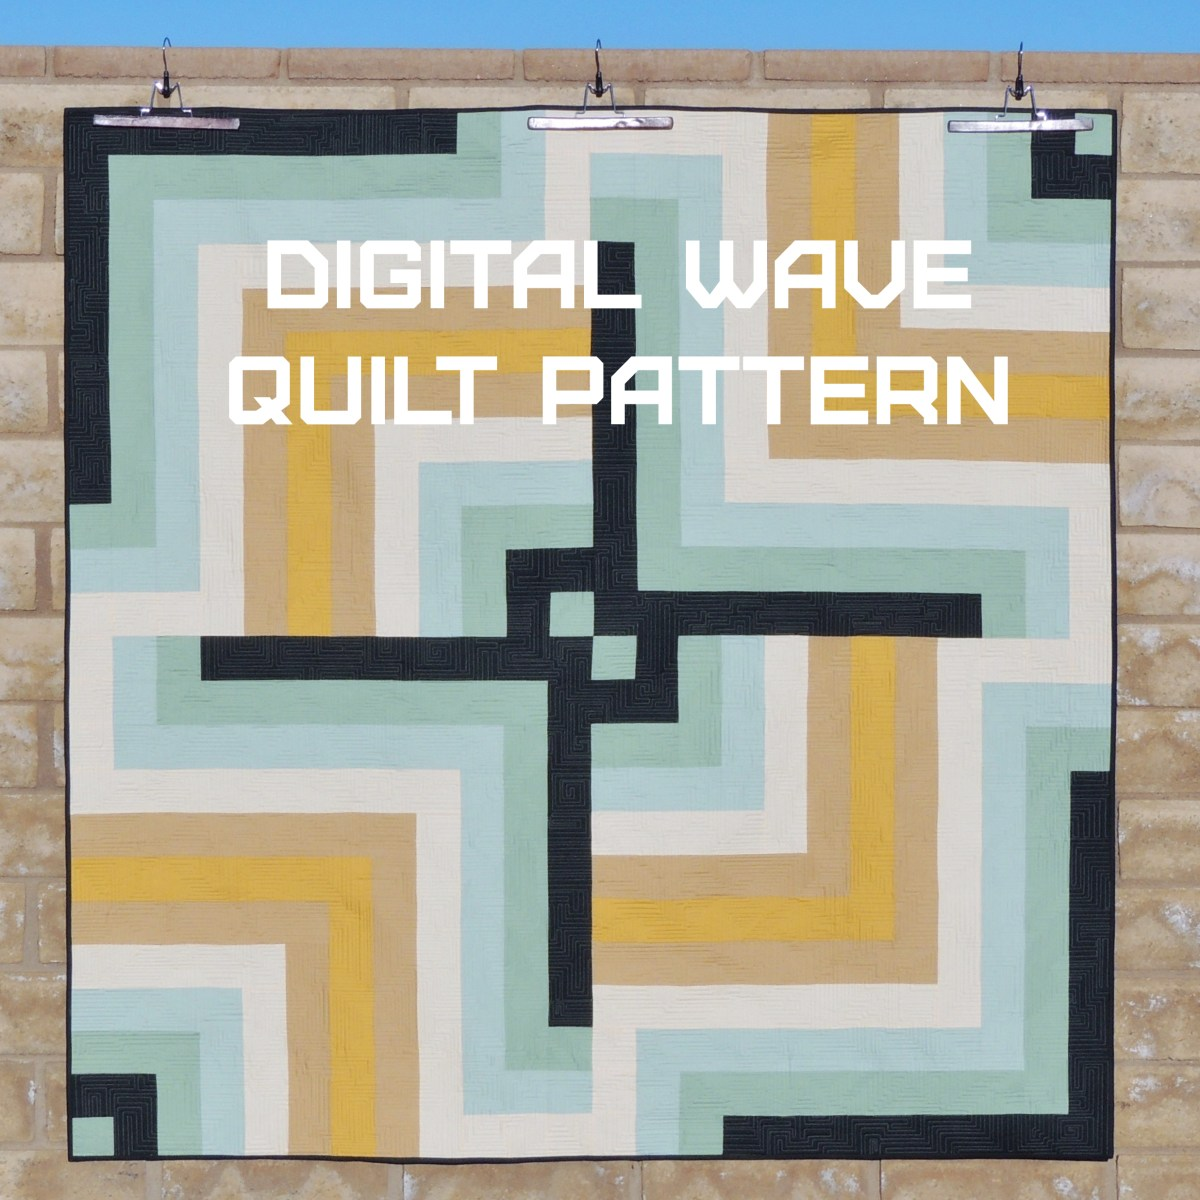 Digital Wave Pattern Release